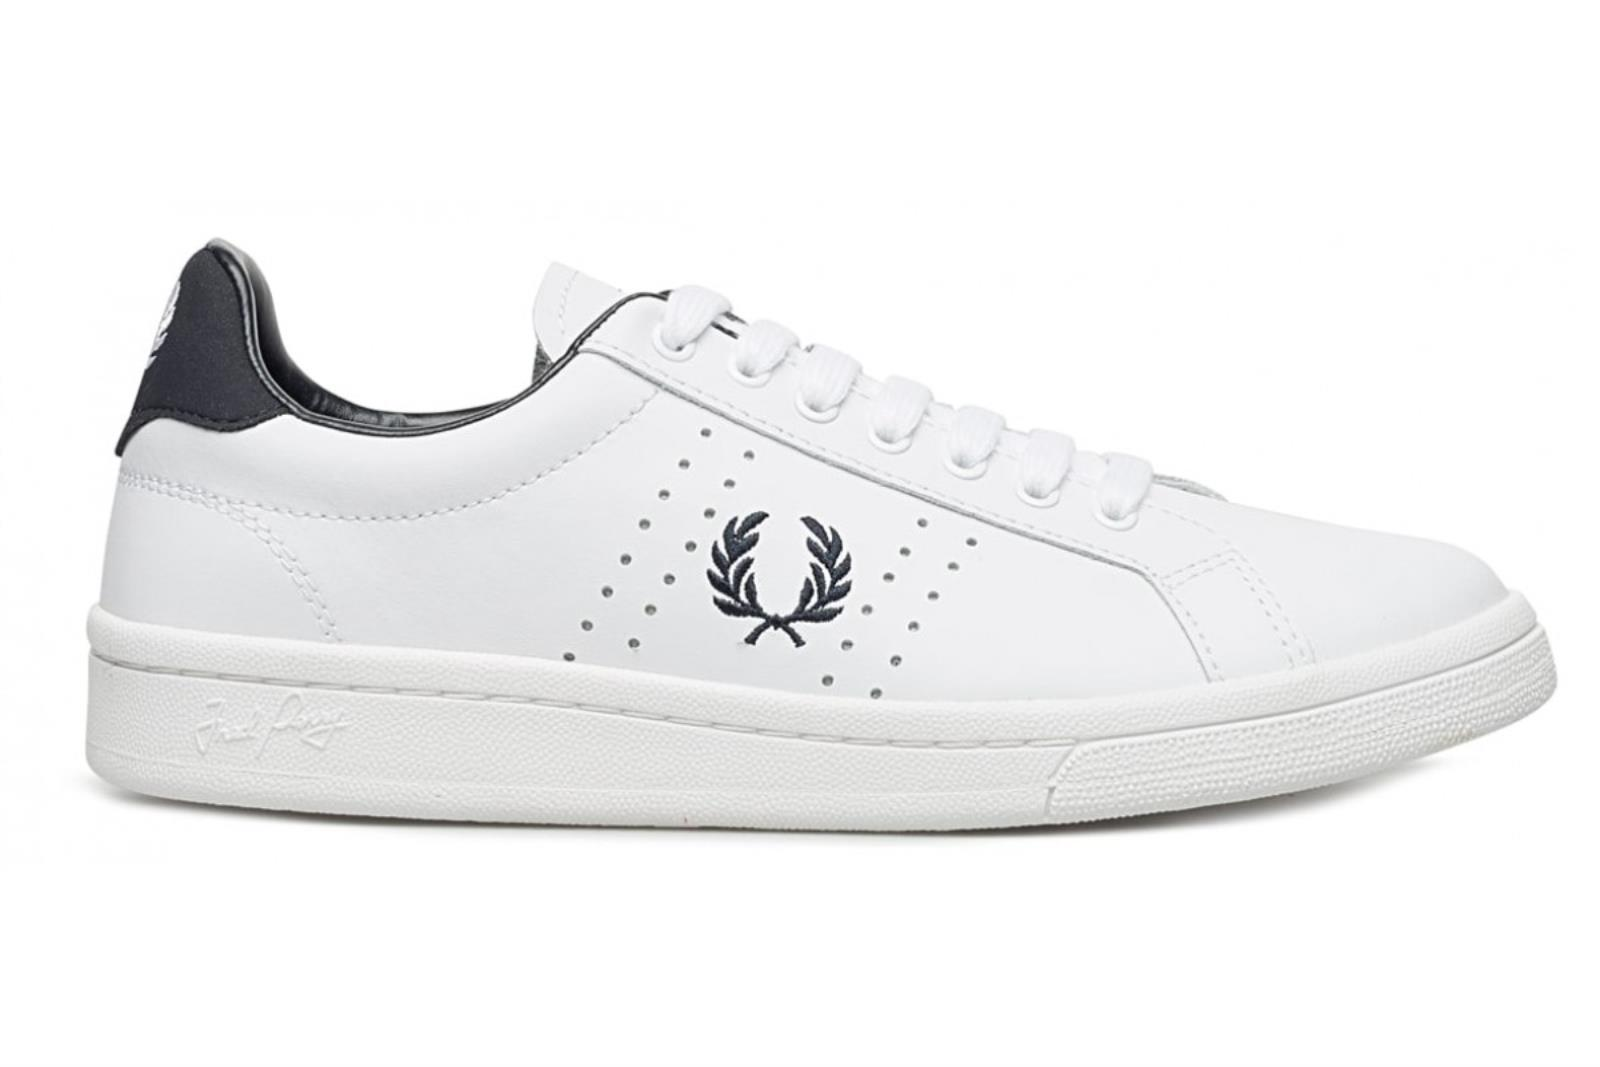 reputable site 48838 81f41 Fred Perry Scarpe